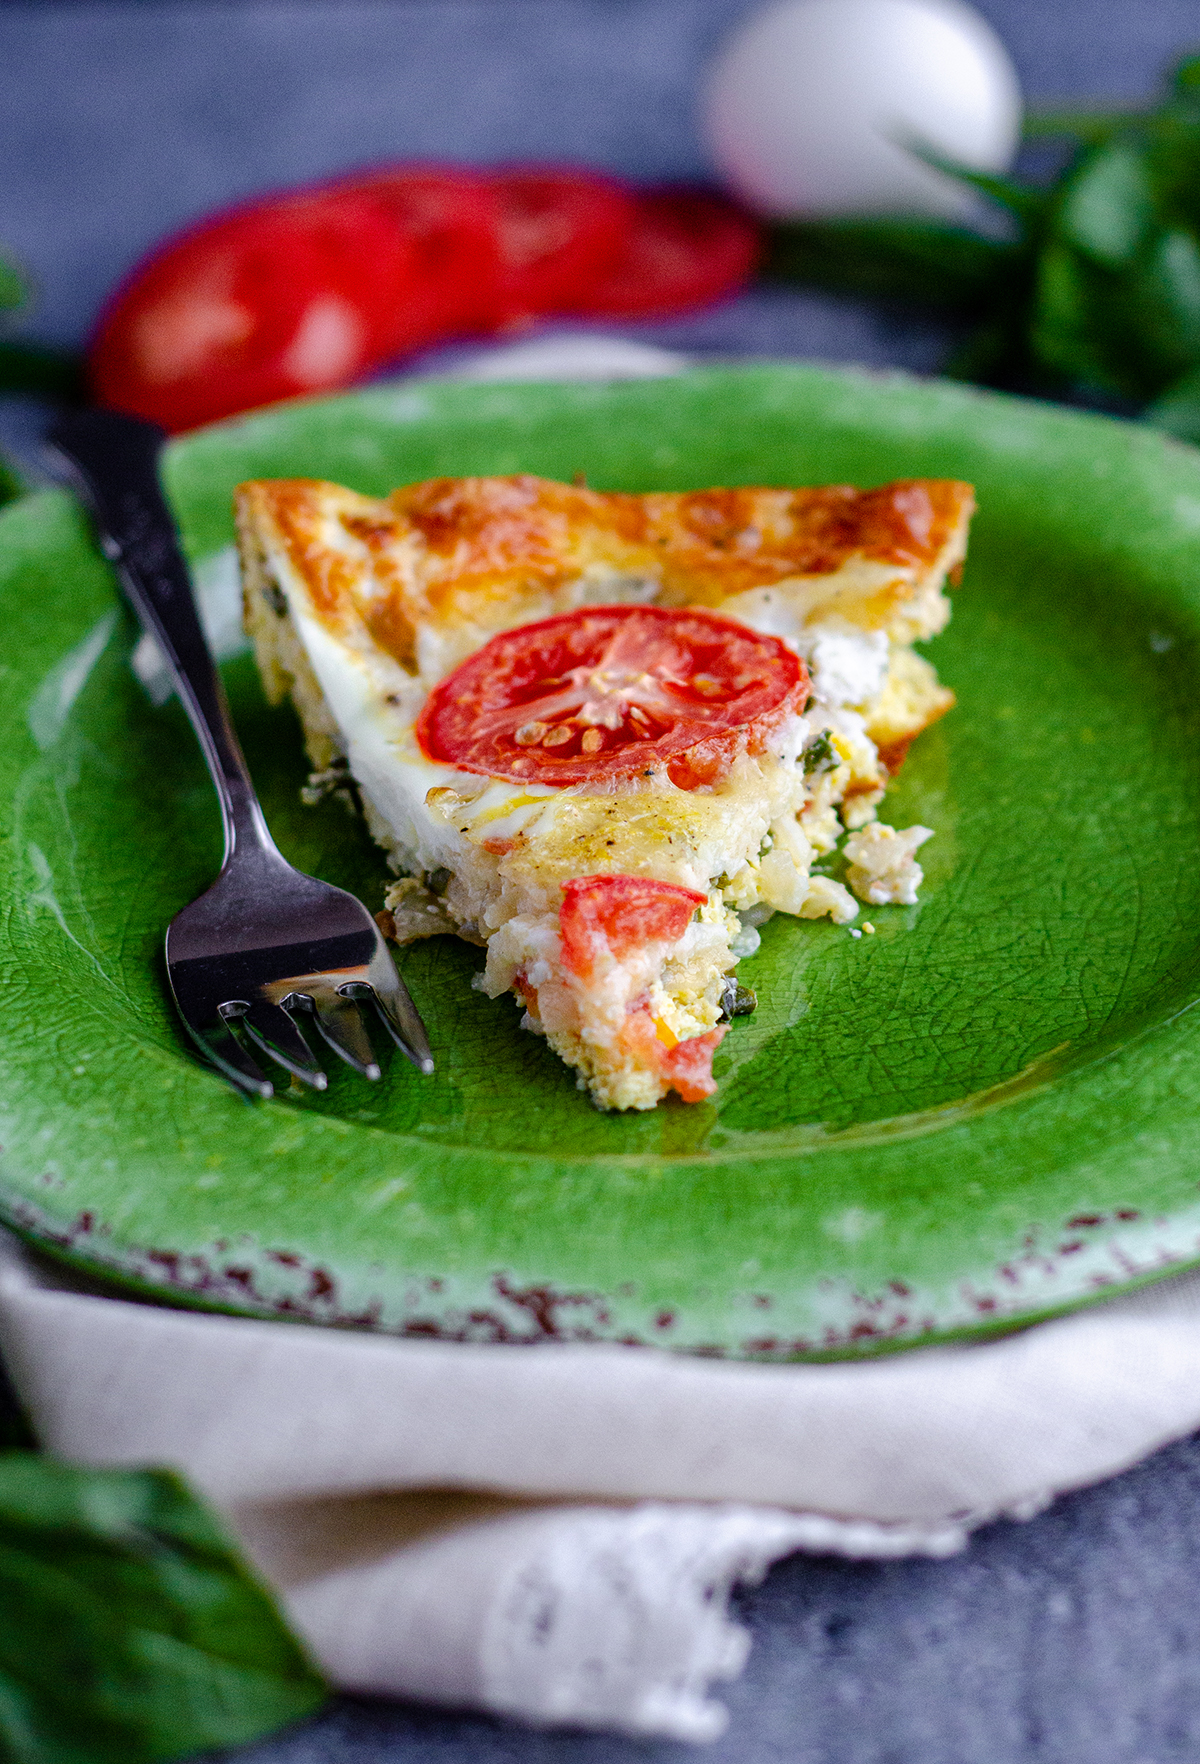 A crustless, low-carb quiche bursting with flavorful basil, creamy mozzarella, and juicy tomatoes.